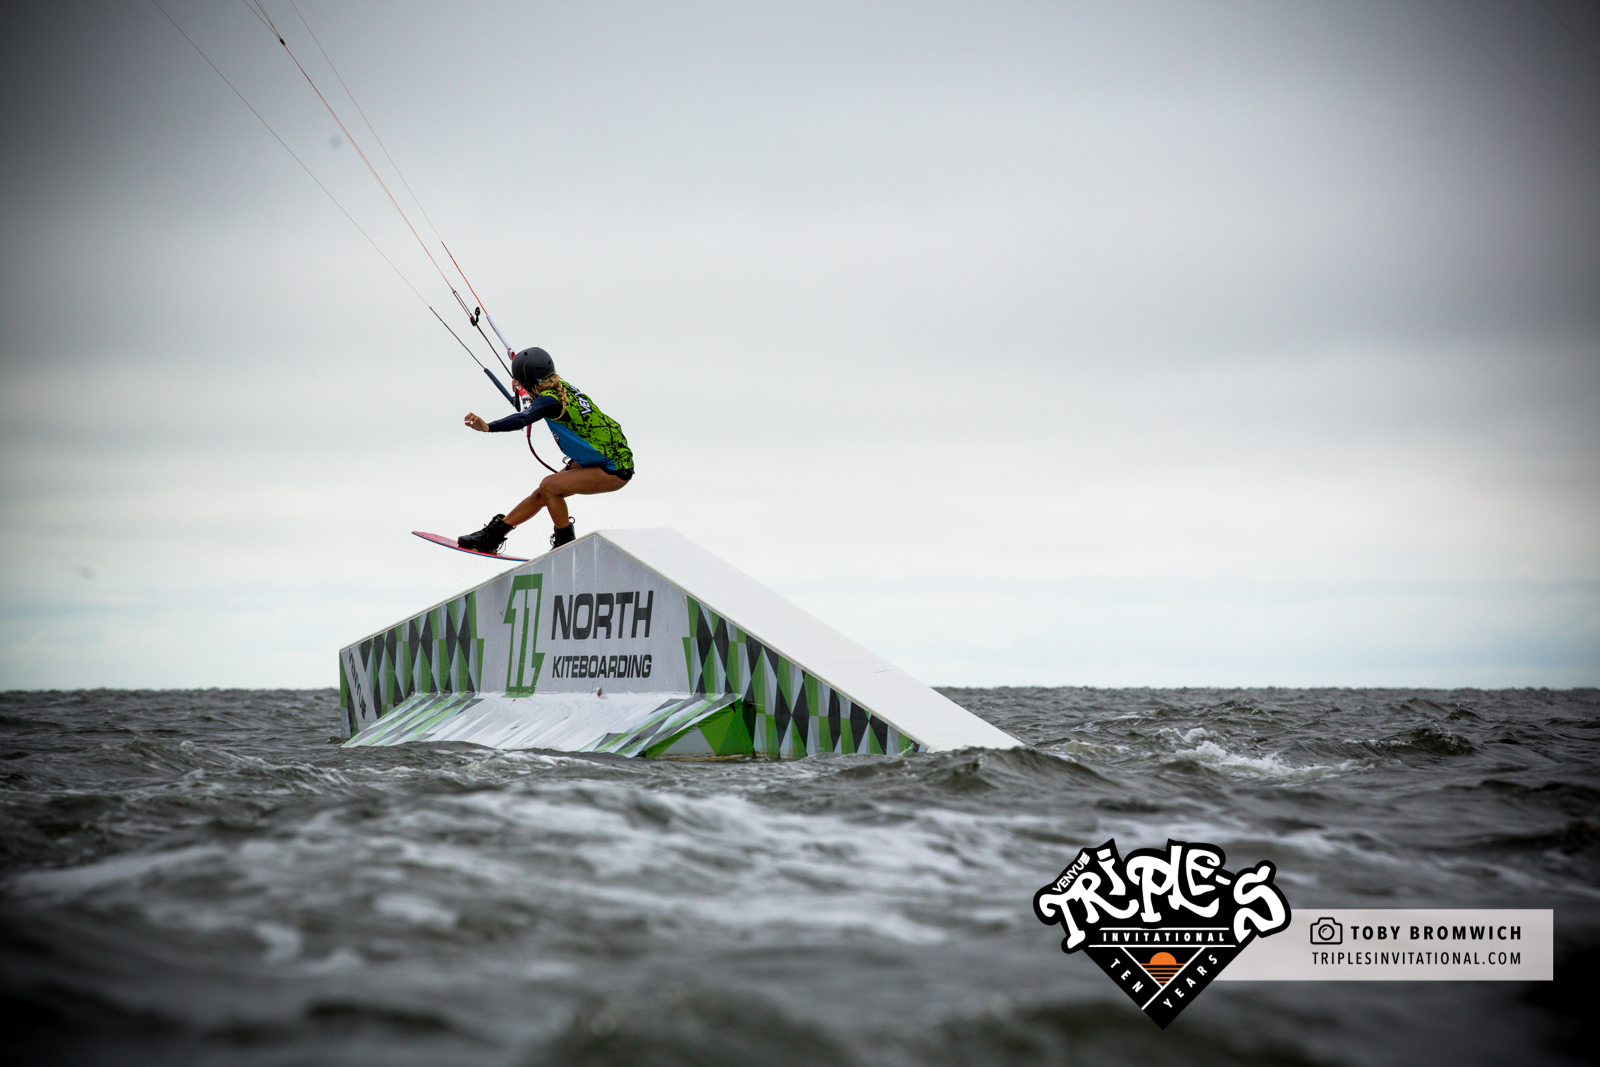 Colleen's domination of female obstacle riding has continued into a 3rd year. With sponsors like North Kiteboarding helping so much it's no wonder!